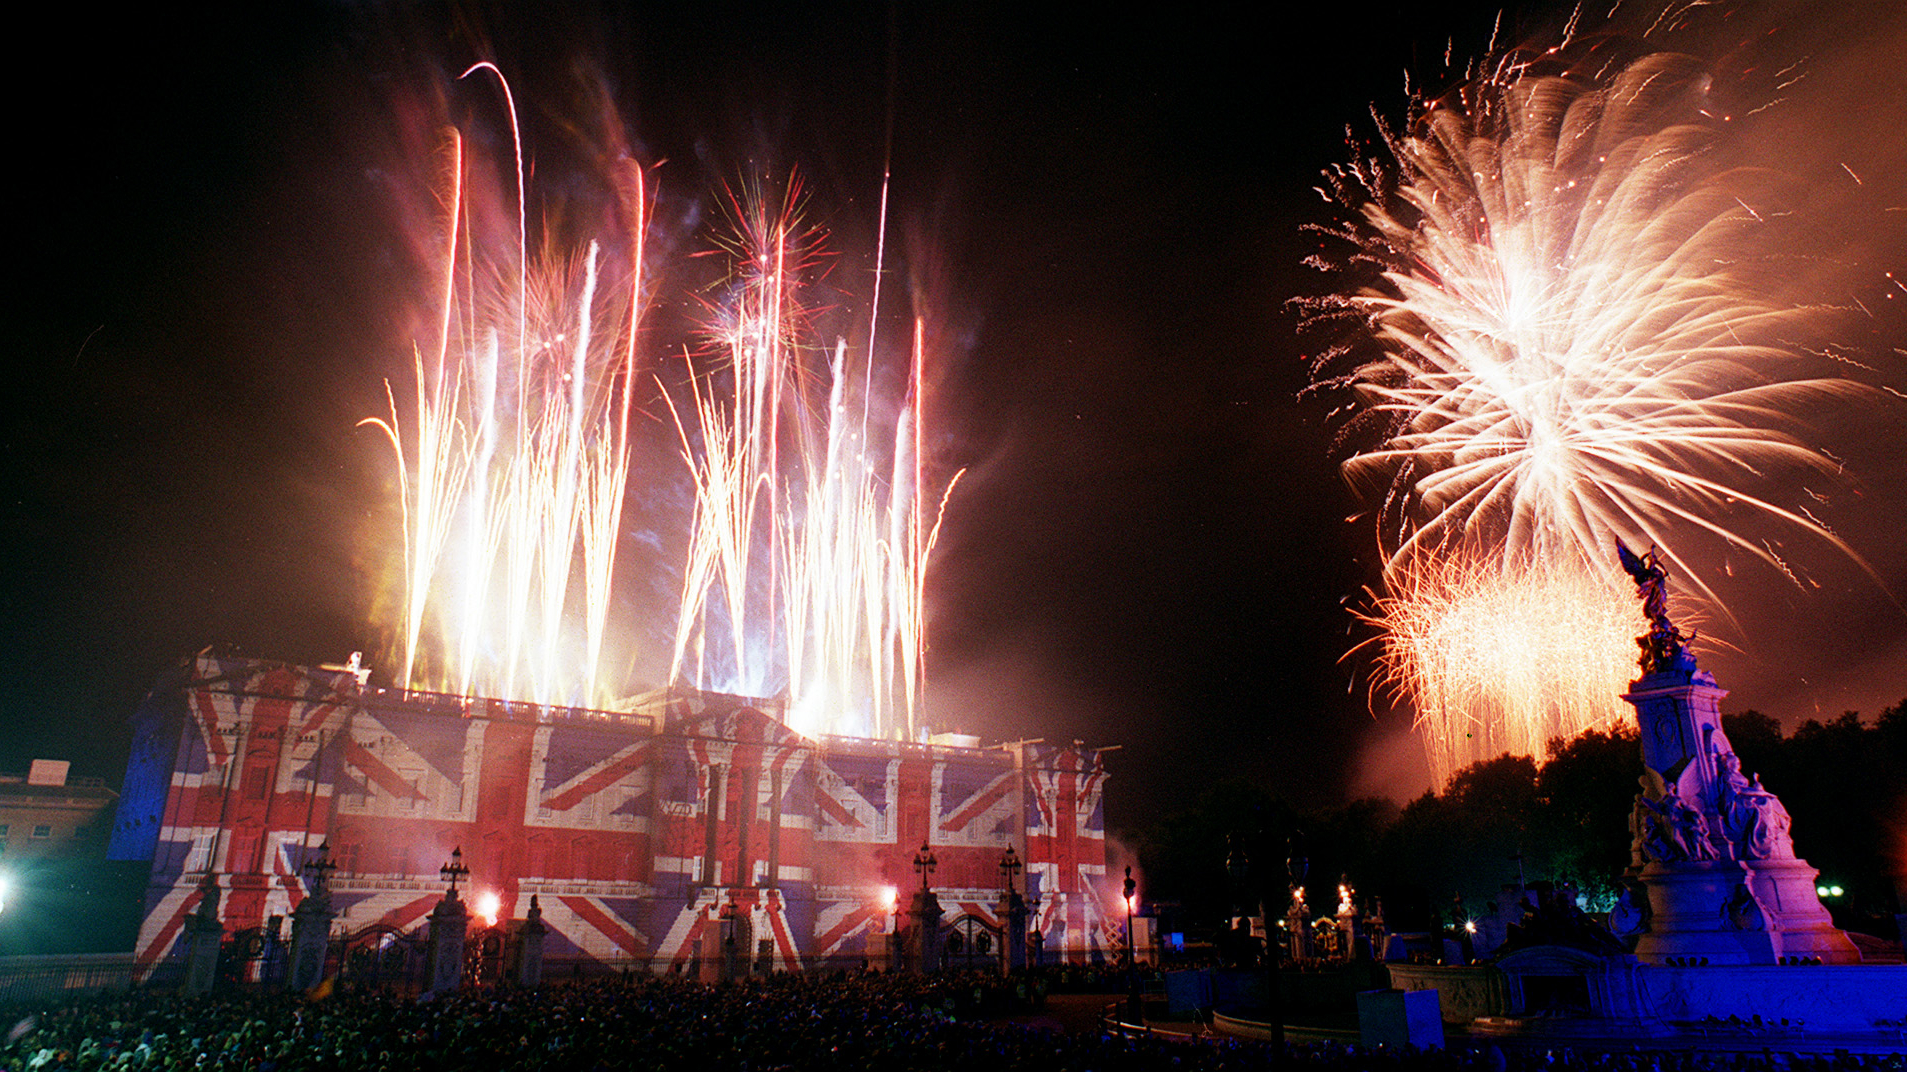 Fireworks light up the sky over Buckingham Palace, lit in colours of the Union flag after the Party At the Palace as part of the Golden Jubilee celebrations in London Monday, June 3, 2002. Britain's Queen Elizabeth has been the British monarch for 50 years, since the death of her father George VI in 1952. (AP Photo/Steve Holland